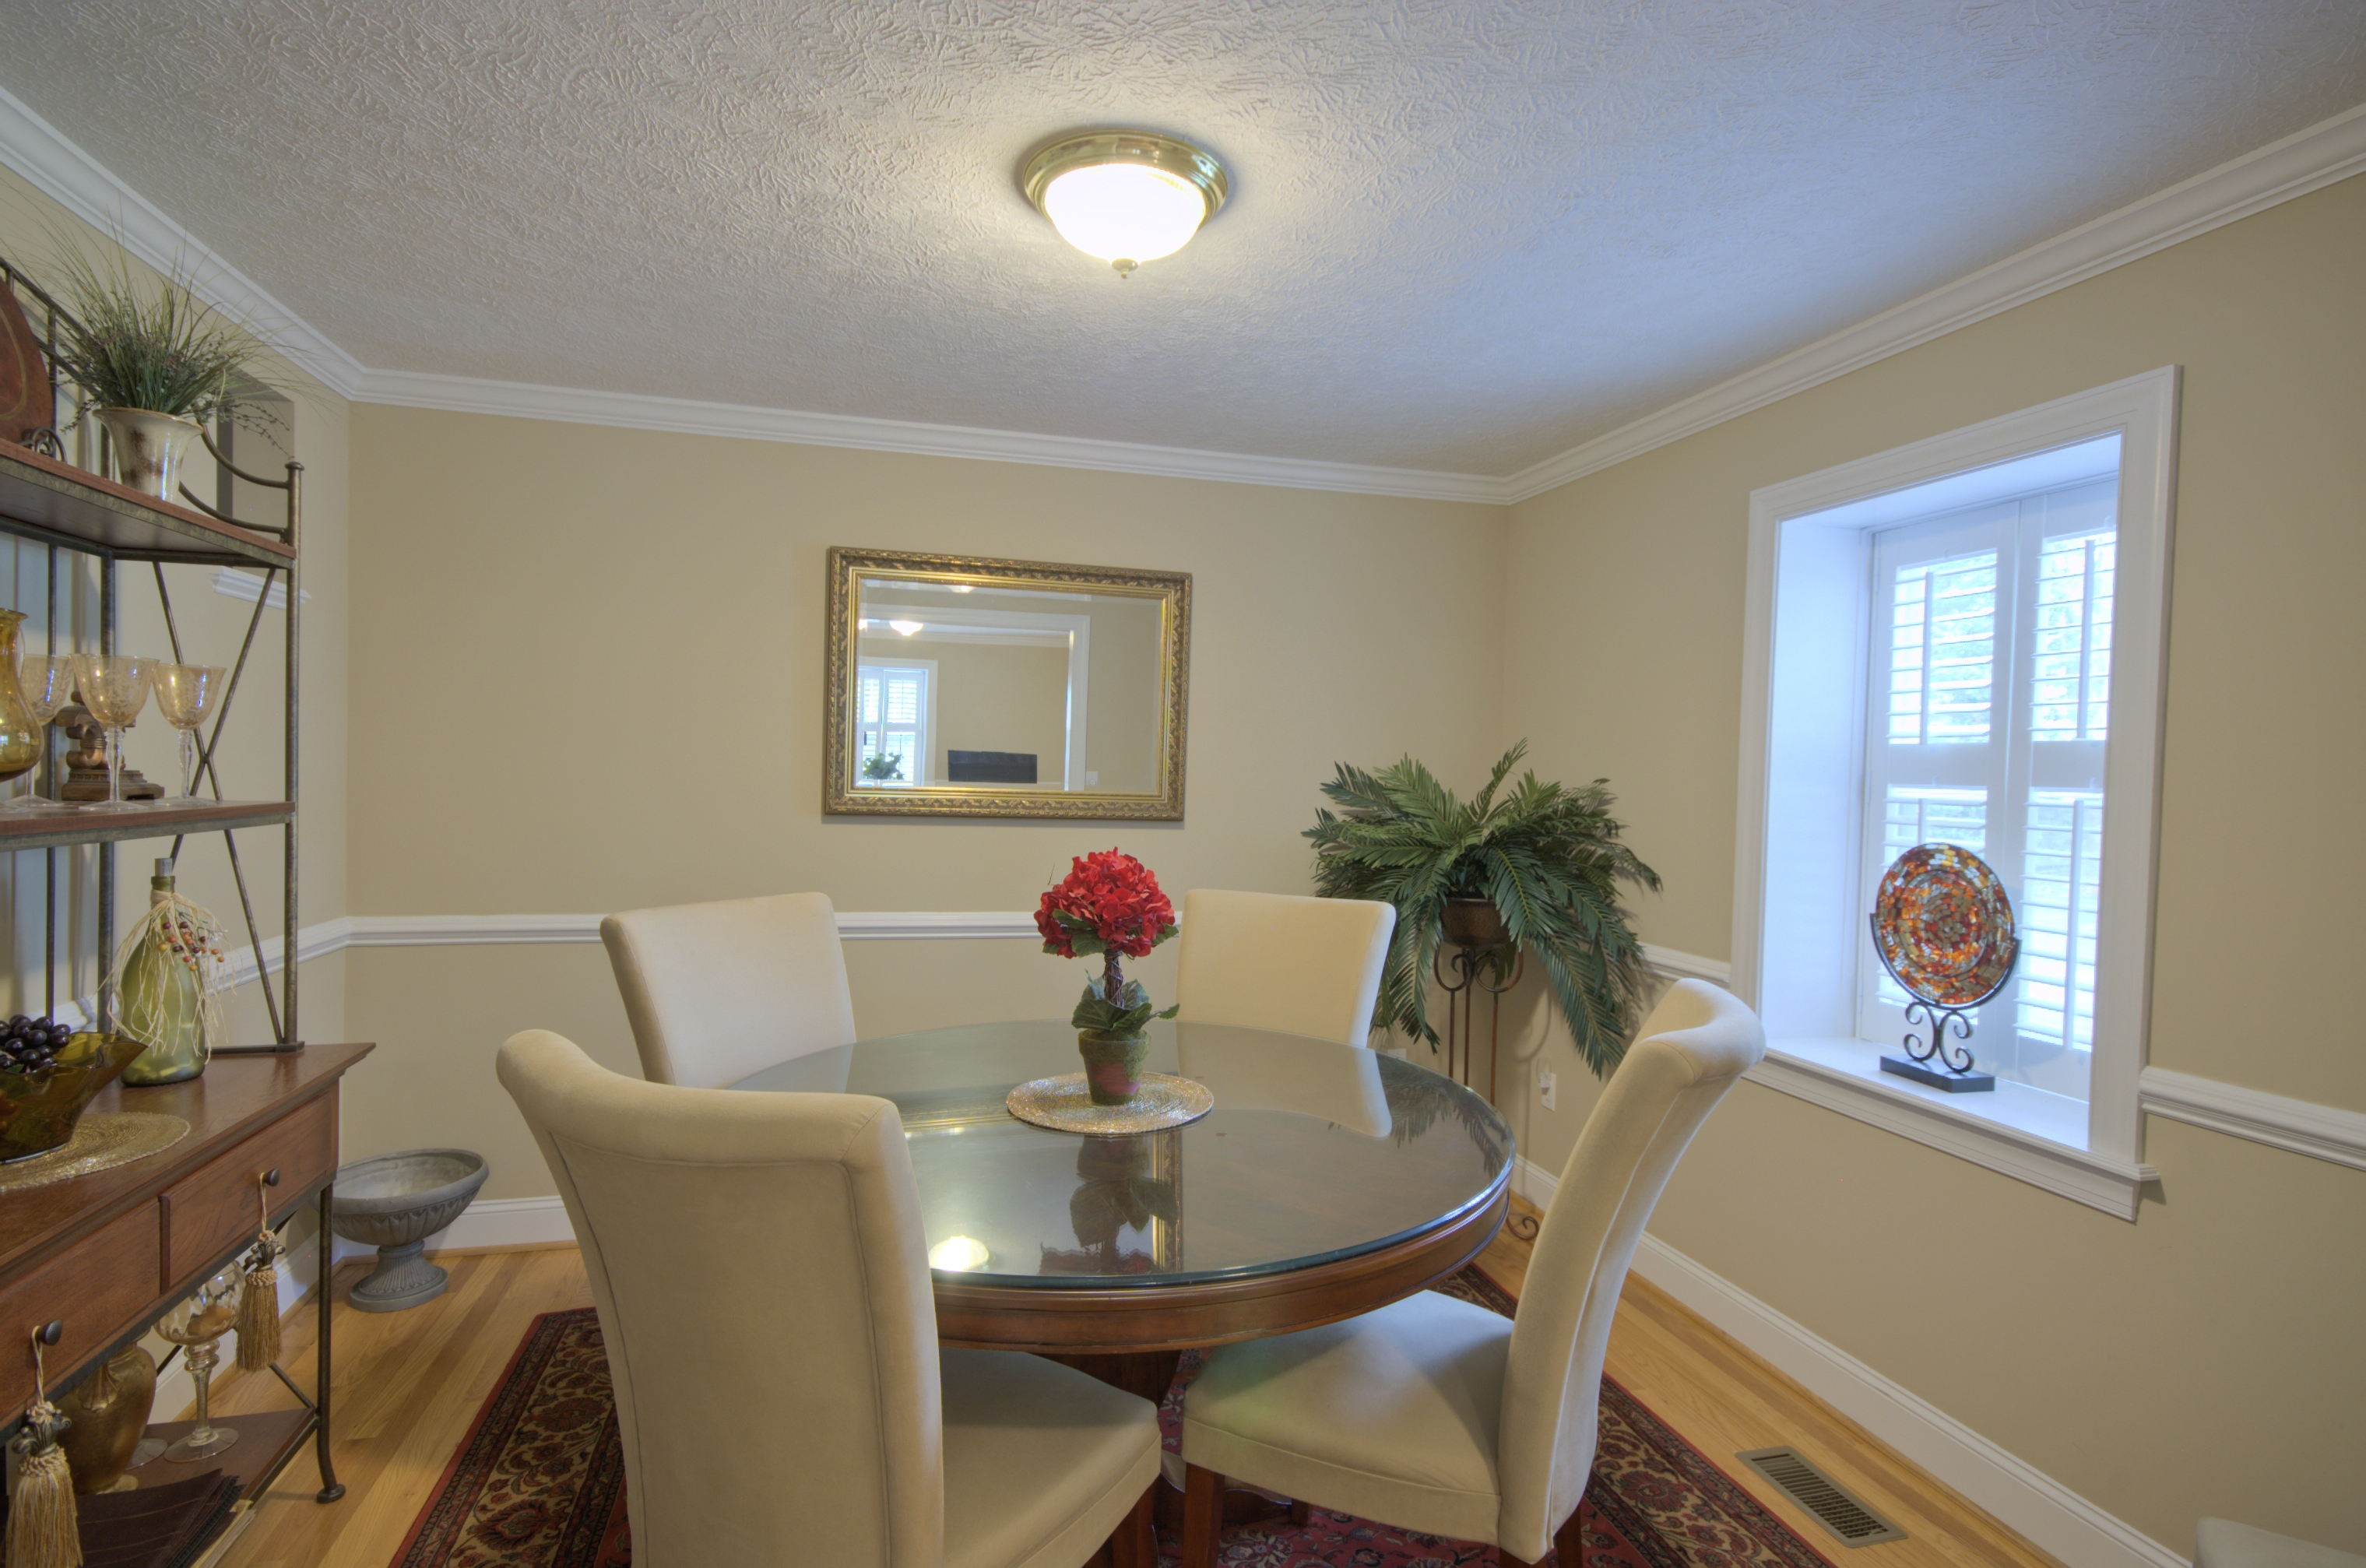 Luxury Dining Room Walls With Chair